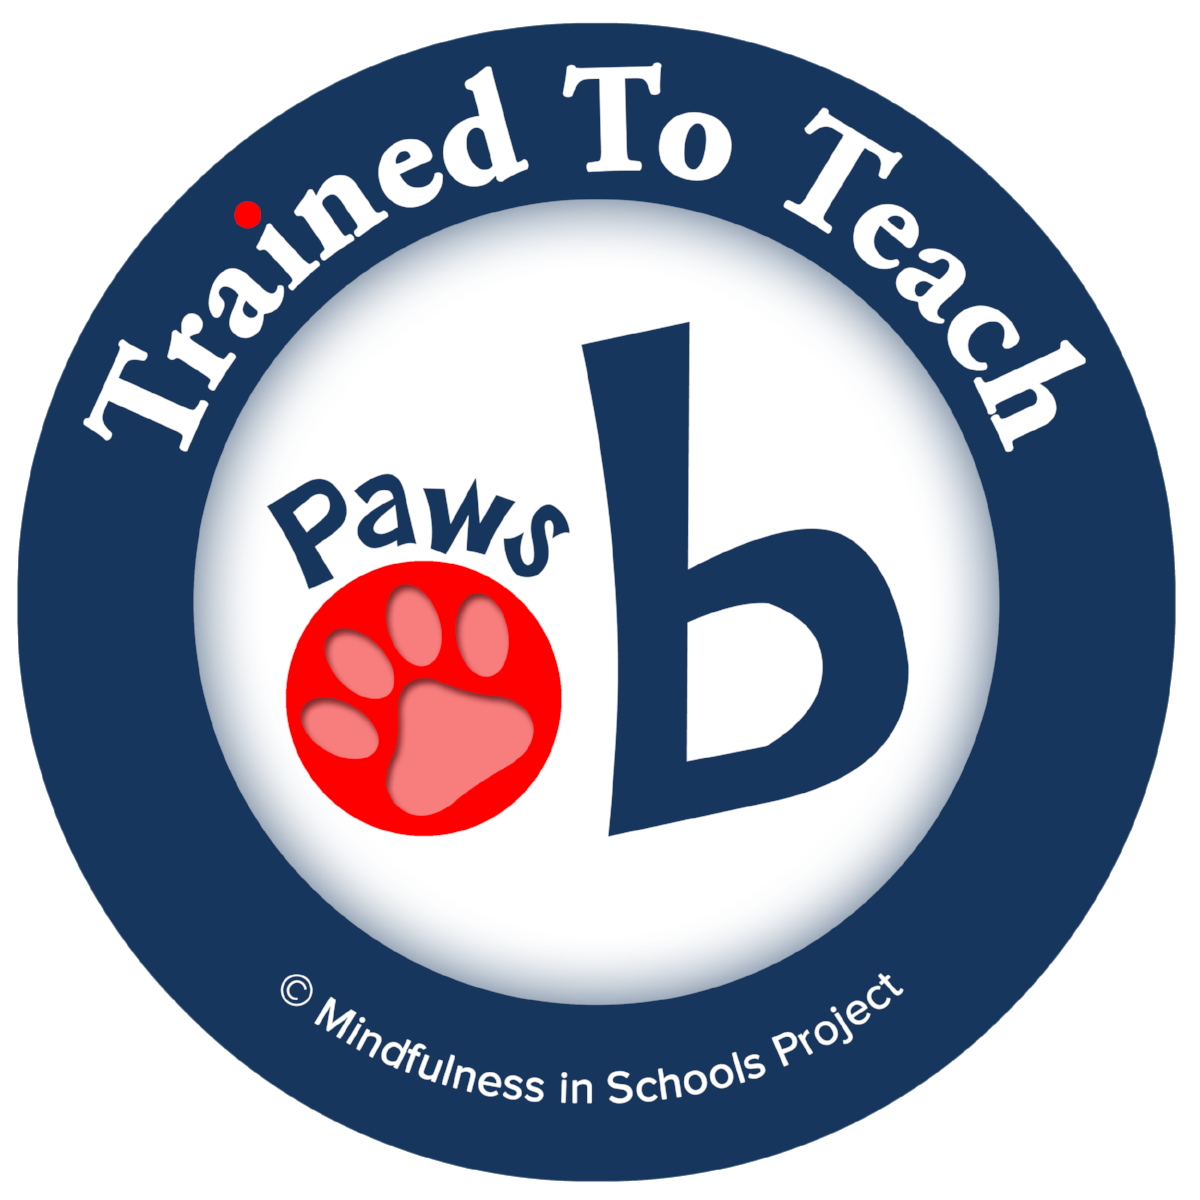 Trained-To-Teach-Paws-B.png